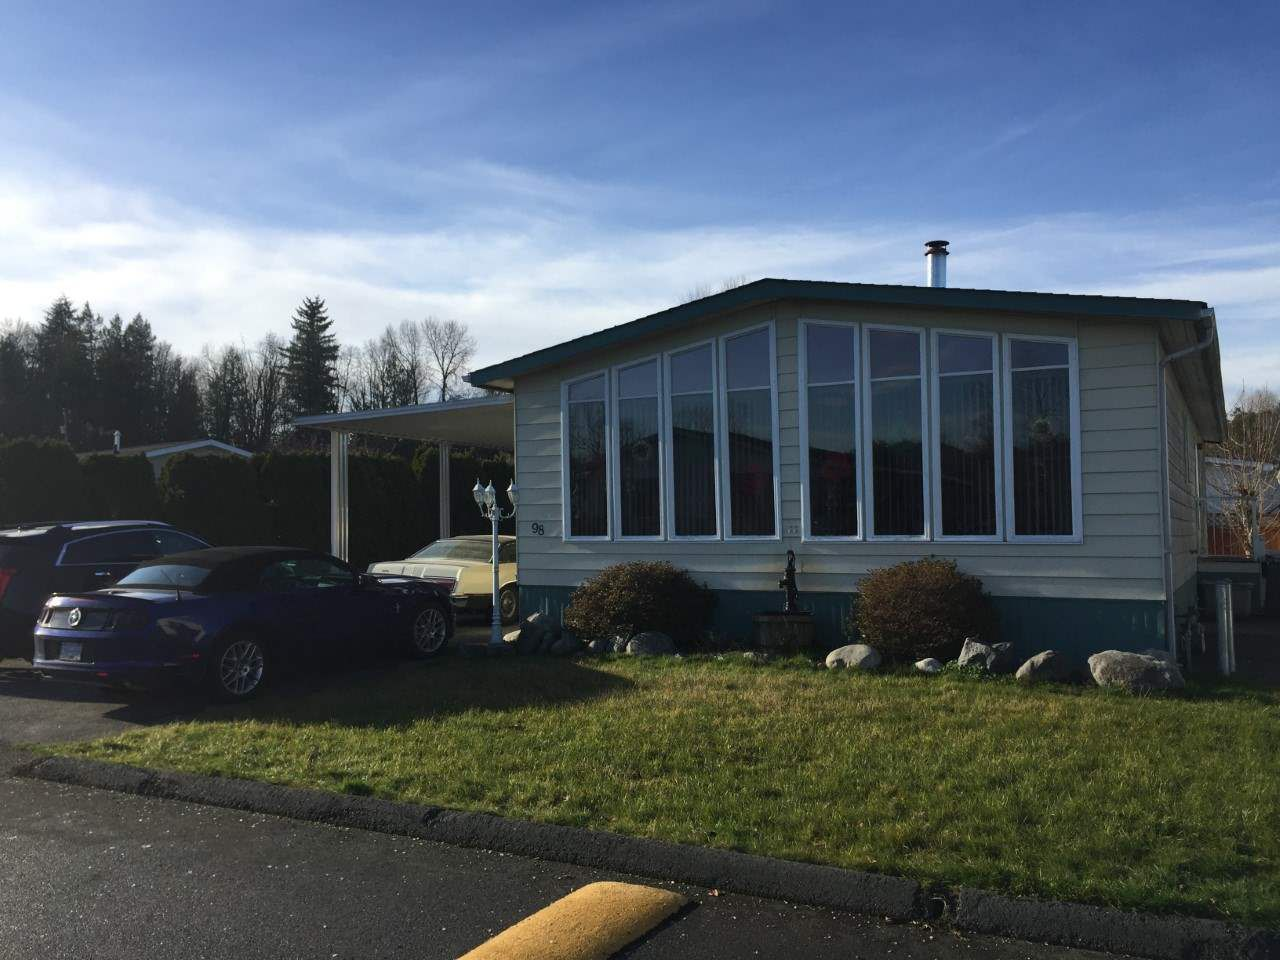 """Main Photo: 98 3300 HORN Street in Abbotsford: Central Abbotsford Manufactured Home for sale in """"GEORGIAN PARK"""" : MLS®# R2228990"""